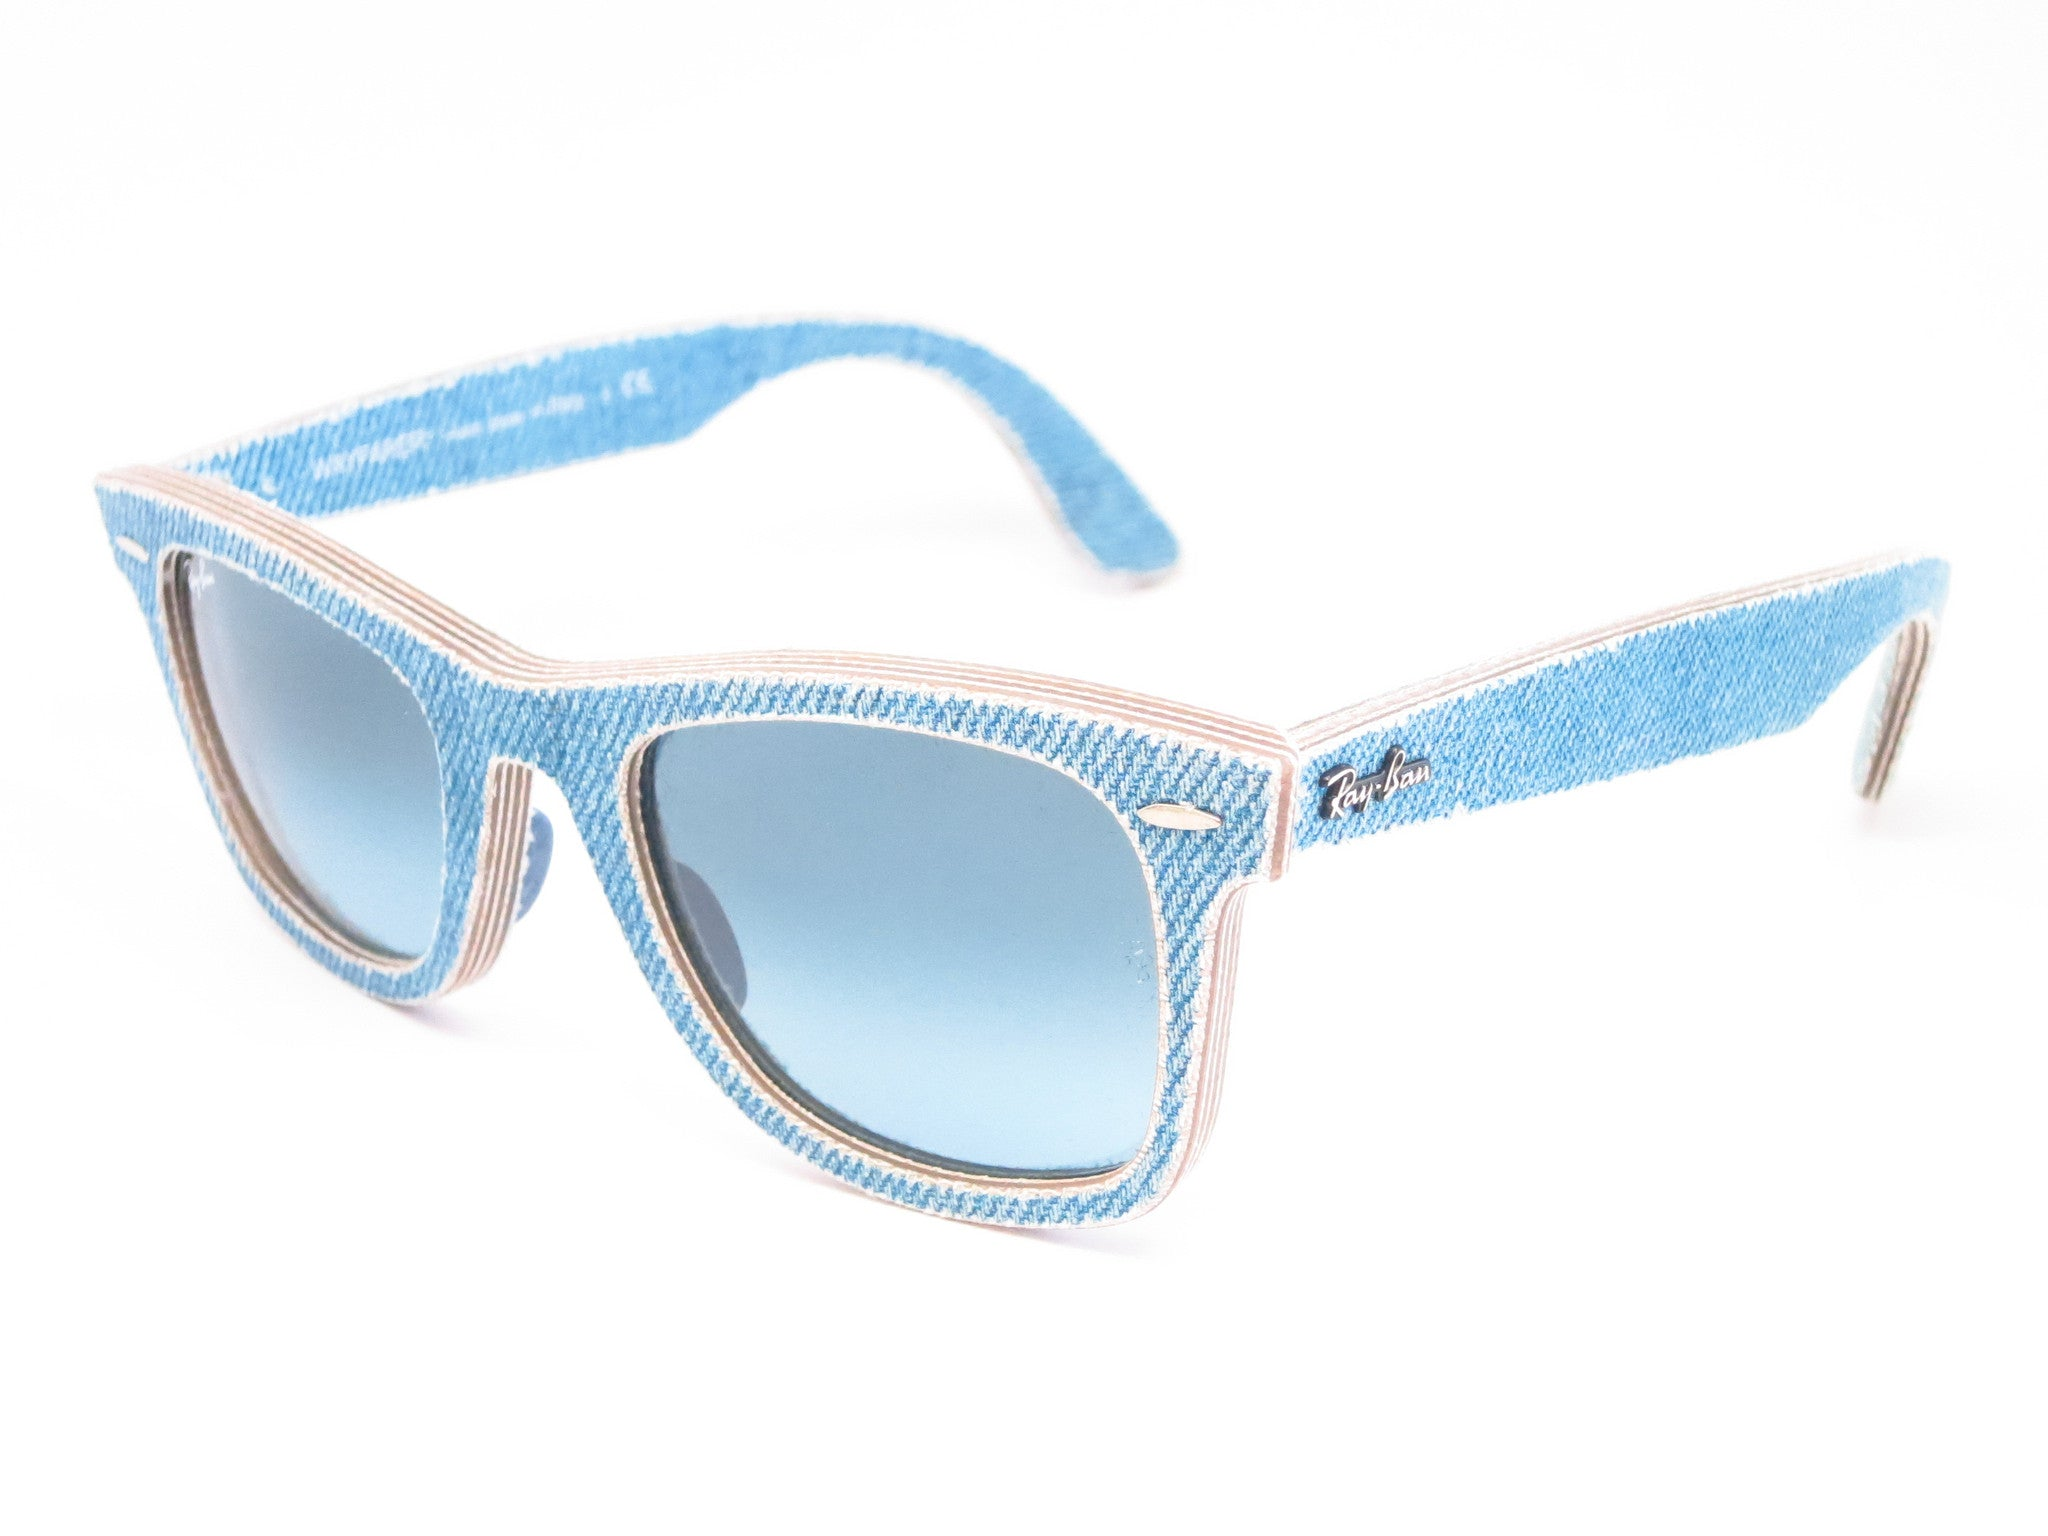 6bb9ce552a Ray Ban Wayfarer 2140 Blue And Cream « Heritage Malta